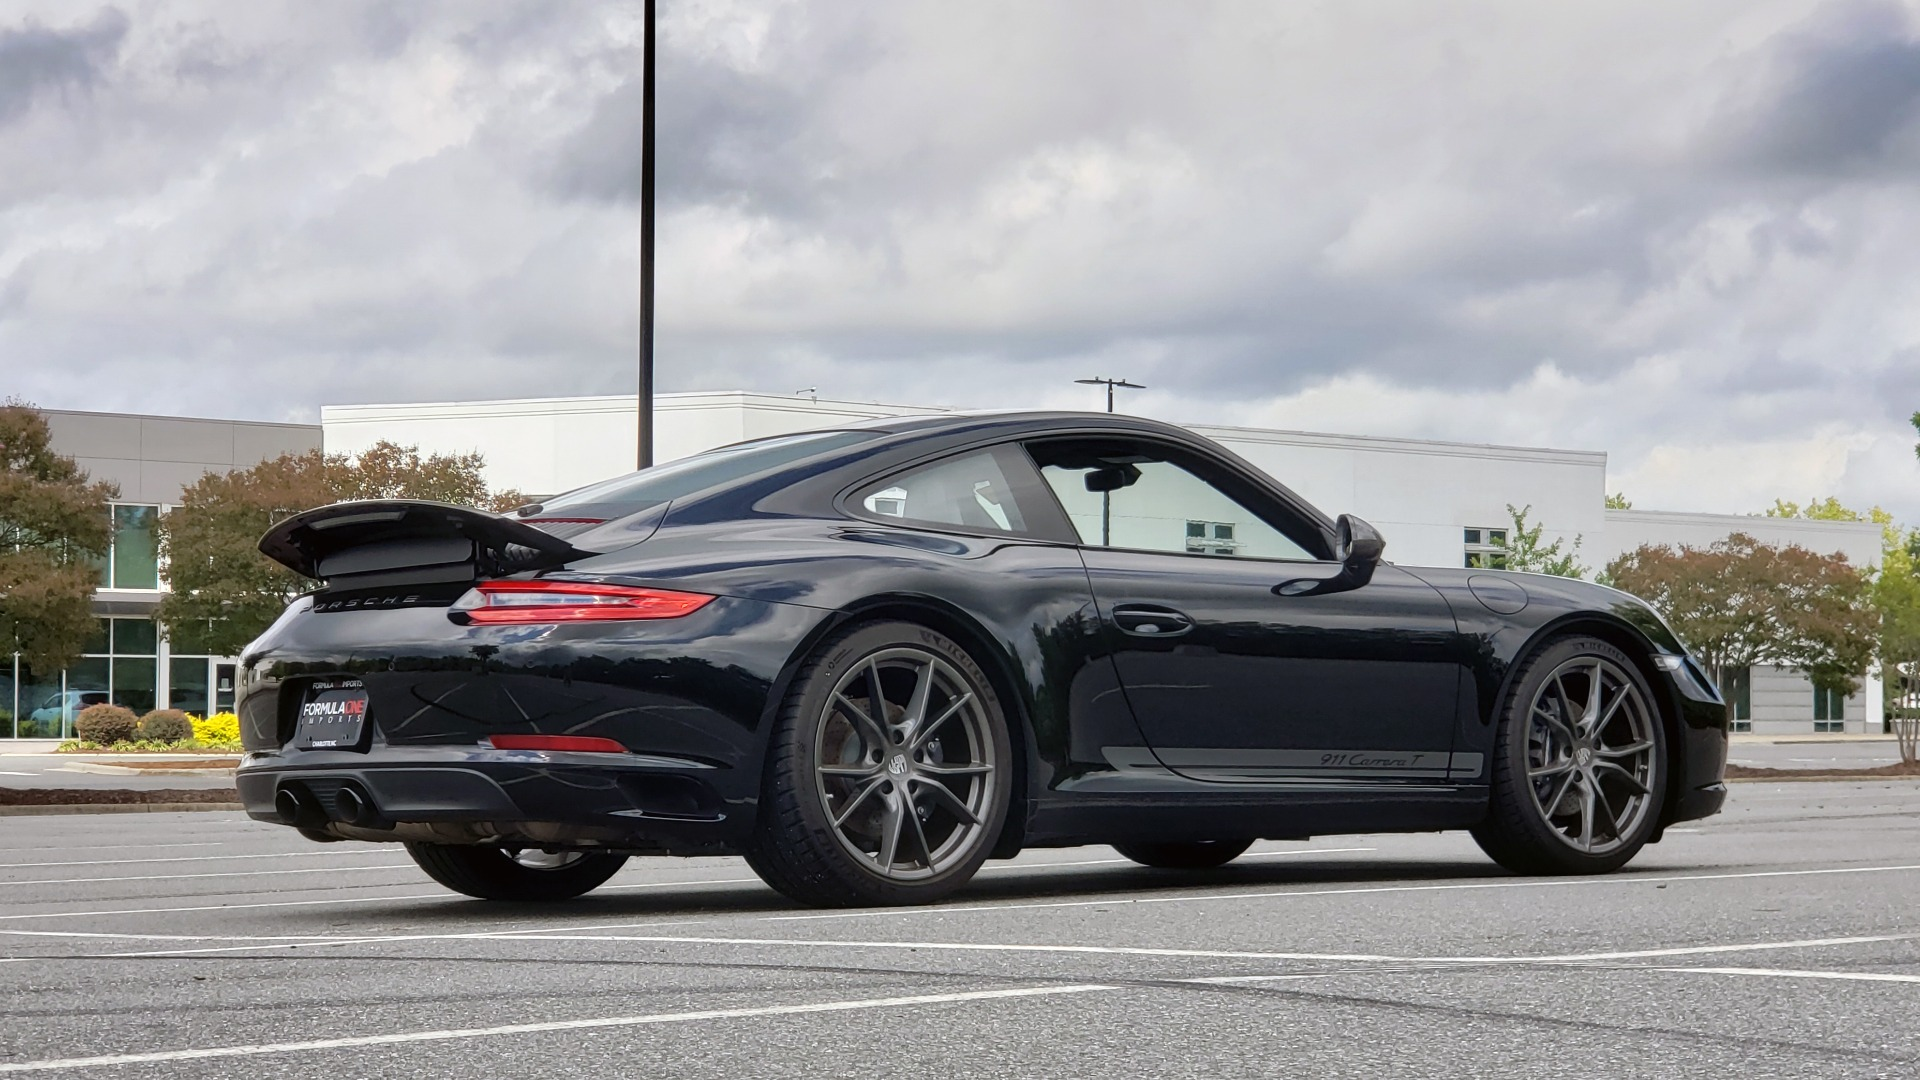 Used 2019 Porsche 911 CARRERA T / 3.0L H6 / MANUAL / PREMIUM / NAV / BOSE / SUNROOF / REARVIEW for sale $117,000 at Formula Imports in Charlotte NC 28227 78